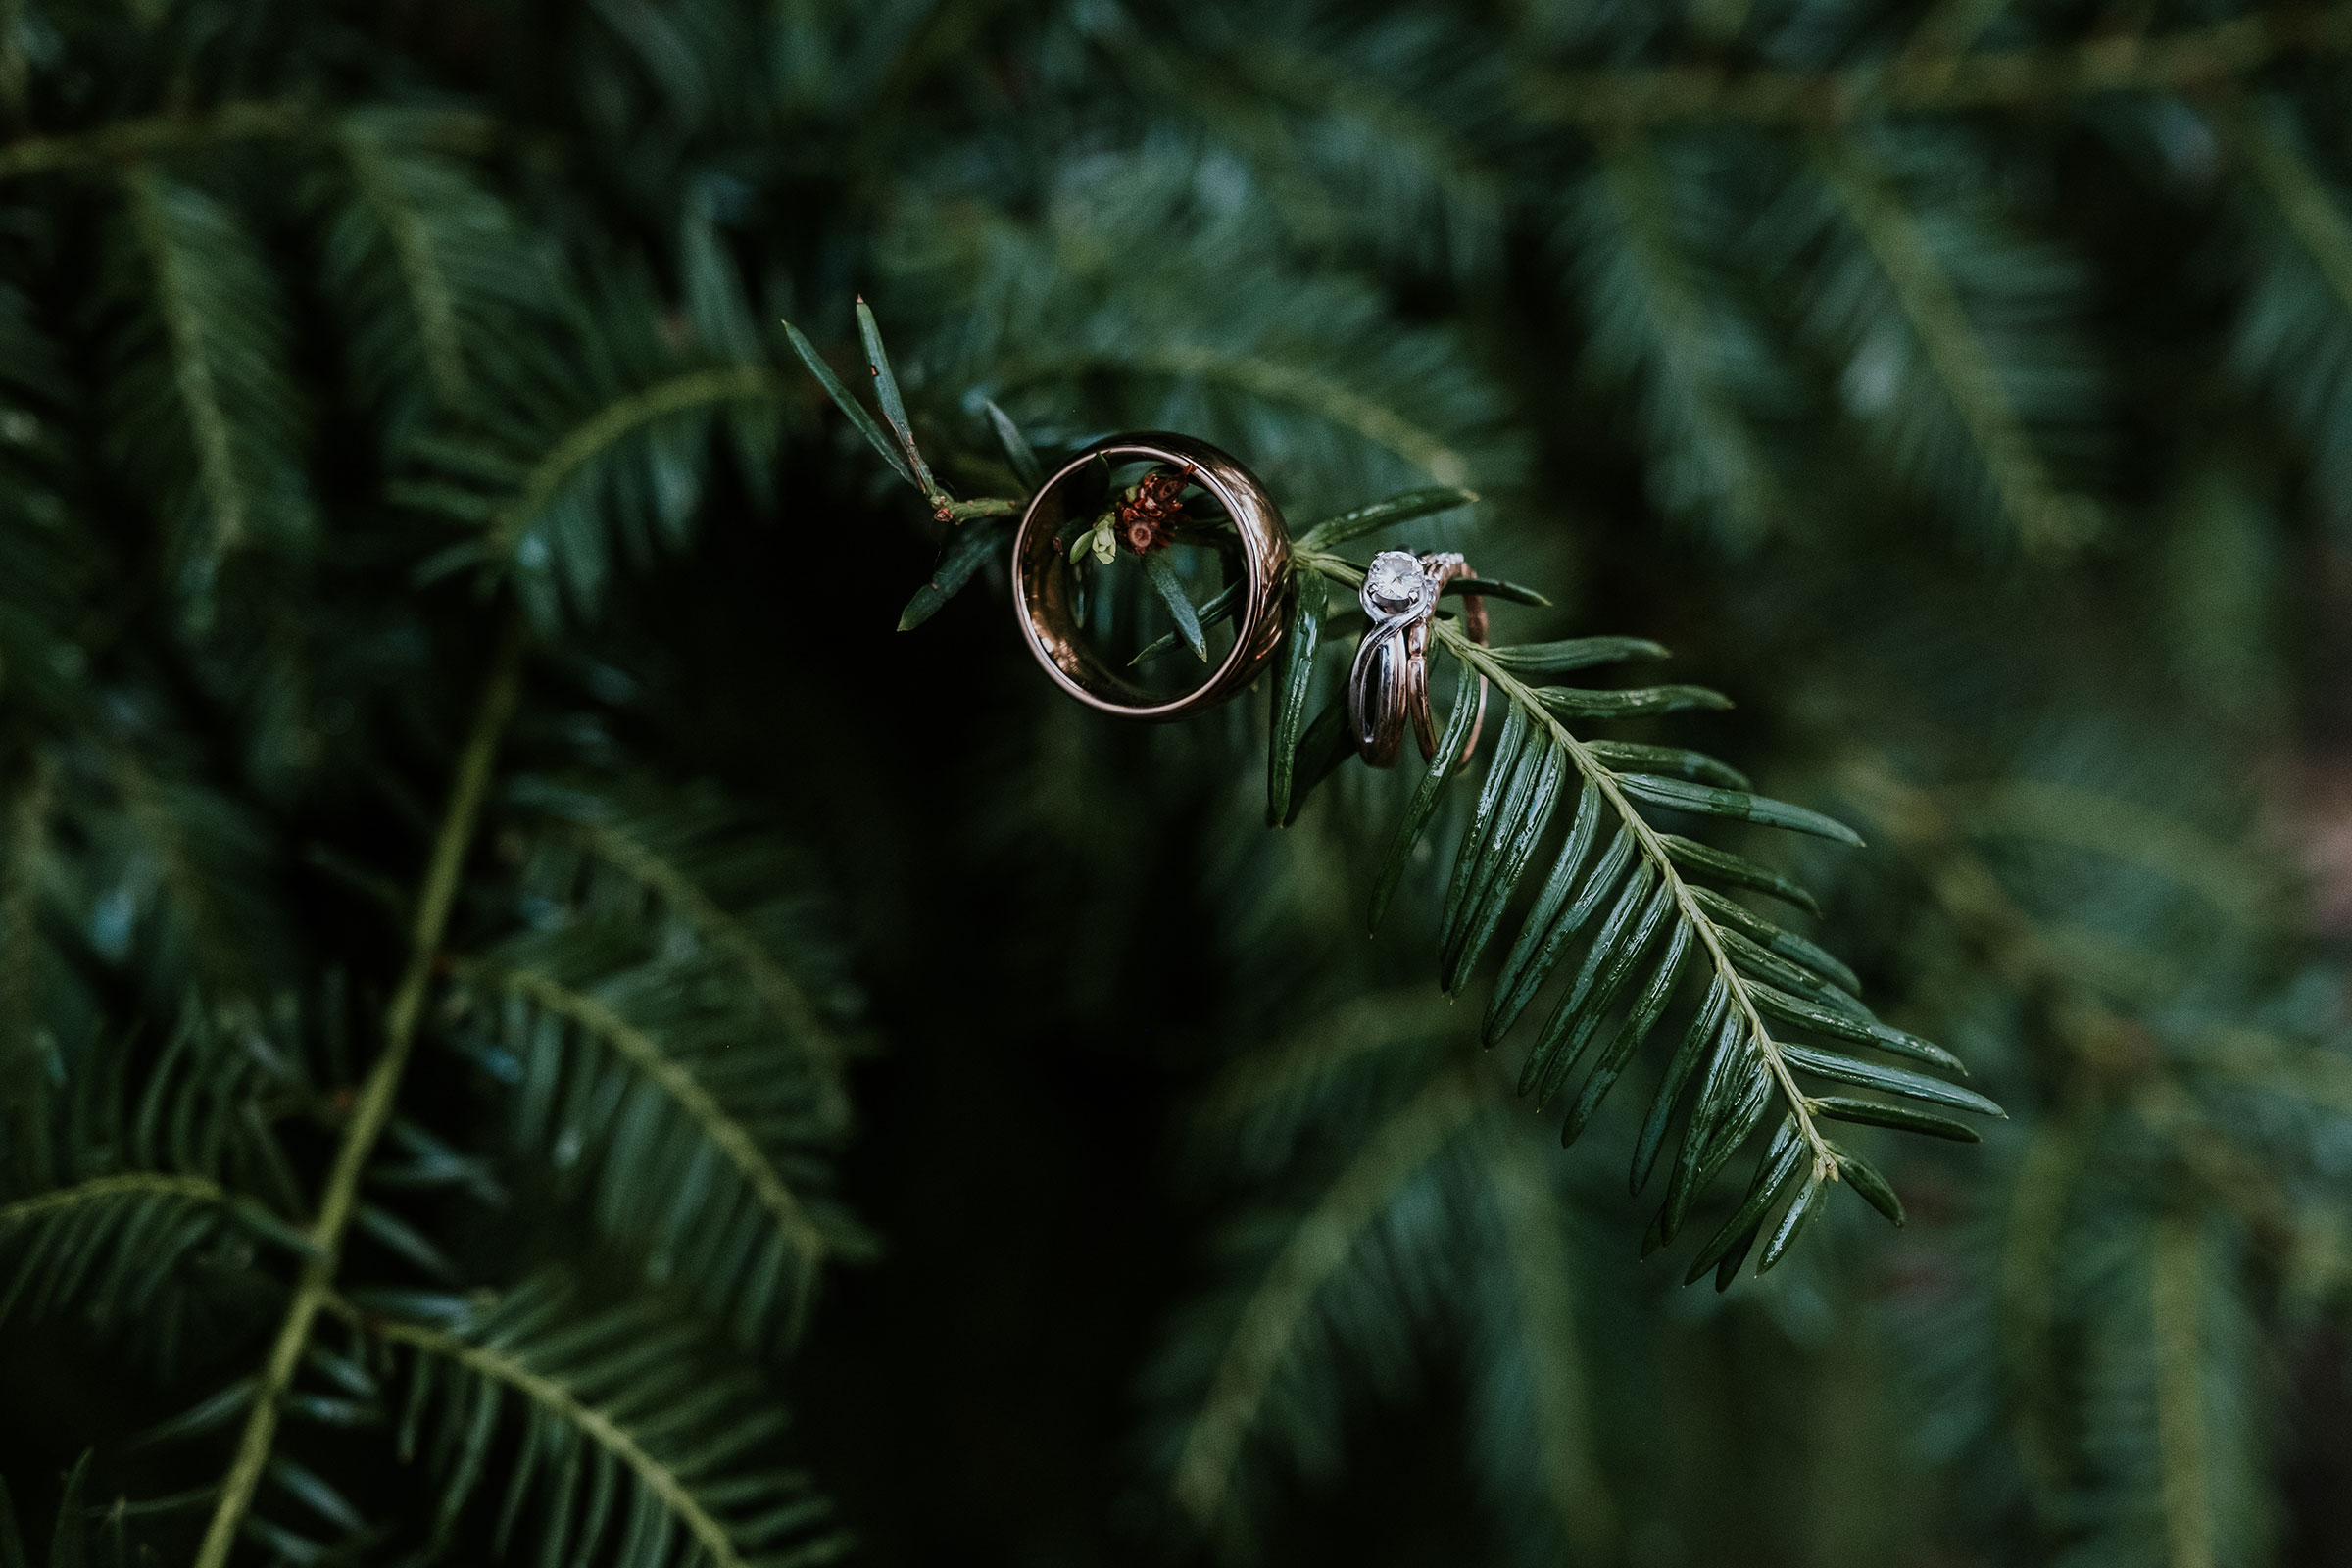 wedding-couple-rings-iowa-state-fairgrounds-desmoines-iowa-raelyn-ramey-photography.jpg